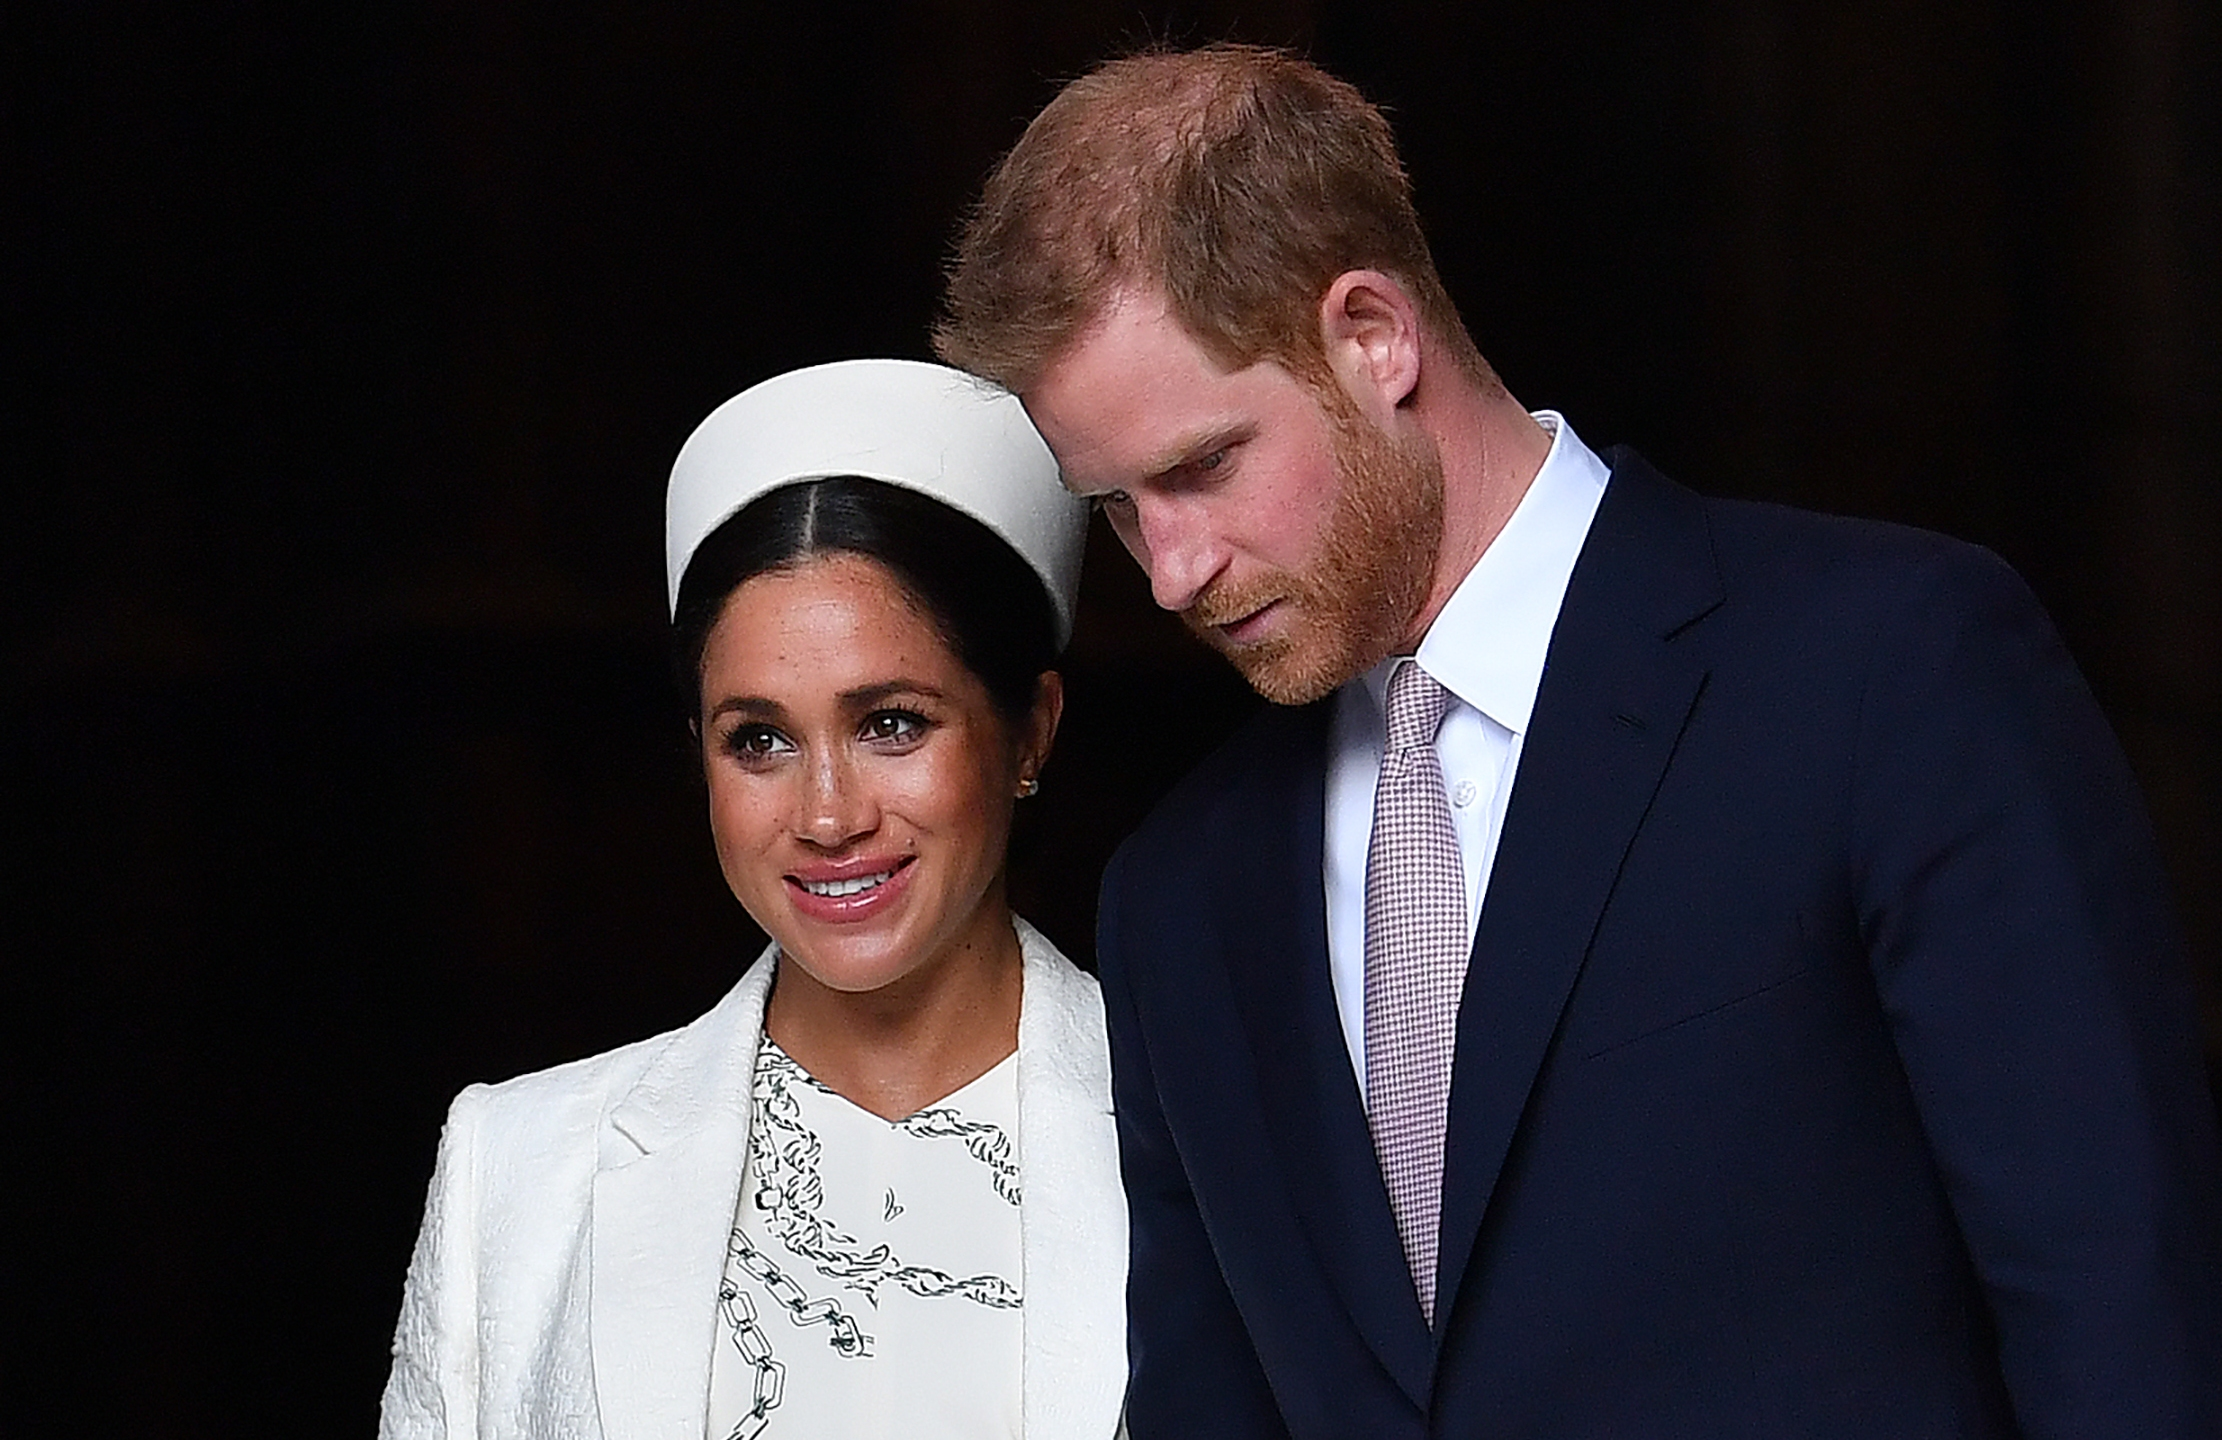 Prince Harry, Duke of Sussex and Meghan, Duchess of Sussex leave after attending a Commonwealth Day Service at Westminster Abbey in central London, on March 11, 2019. (Credit: BEN STANSALL/AFP/Getty Images)